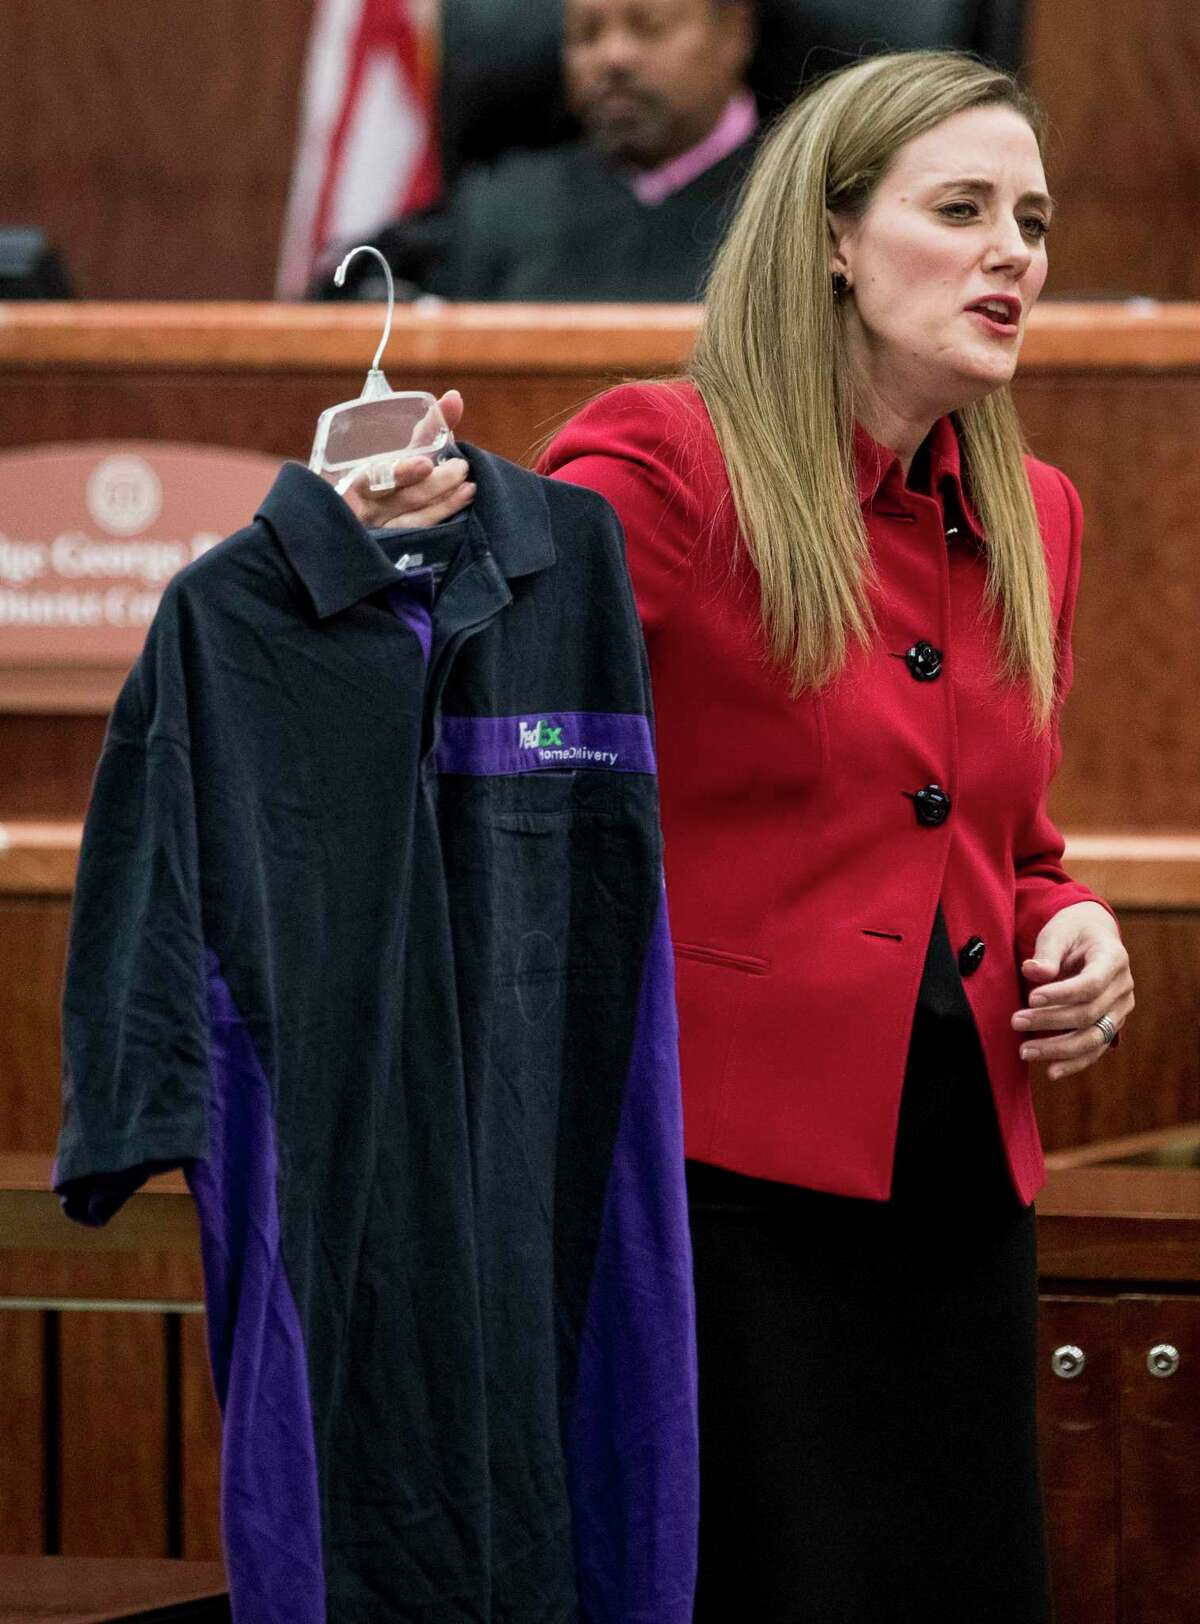 Prosecutor Samantha Knecht holds up a FedEx shirt, which was entered as evidence earlier in the trial, during the closing arguments in Ronald Haskell's capital murder trial on Wednesday, Sept. 25, 2019, in Houston. Haskell is charged with capital murder in connection with the 2014 massacre of a Spring family.